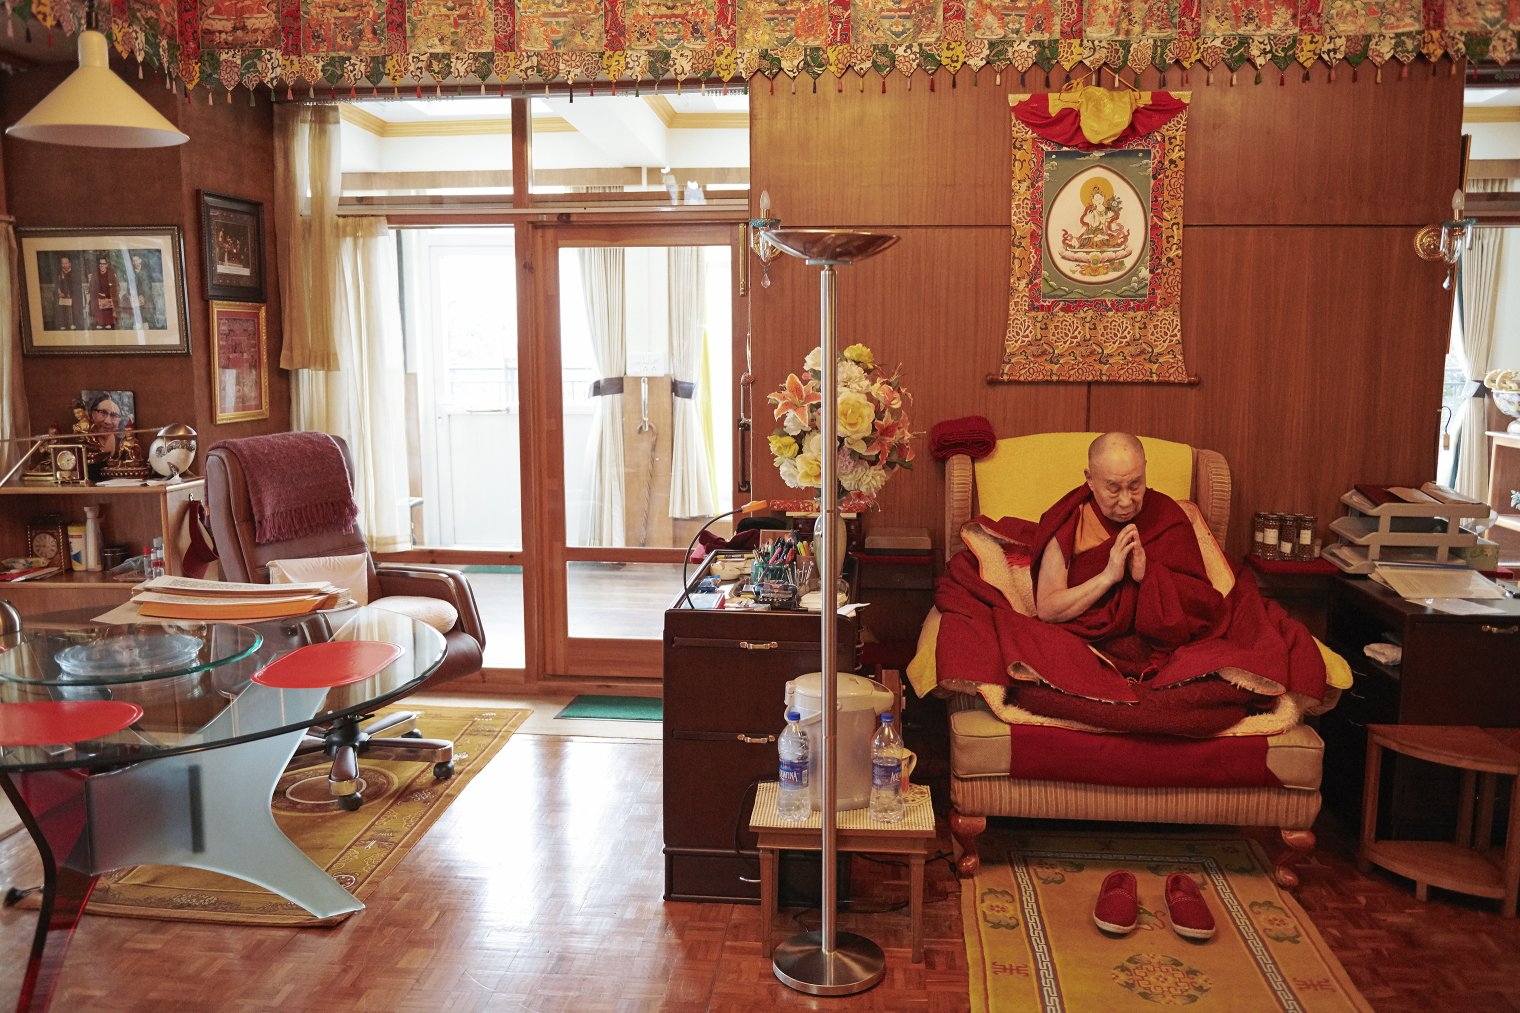 The Dalai Lama meditates in his private chapel inside his residence on Feb. 18.